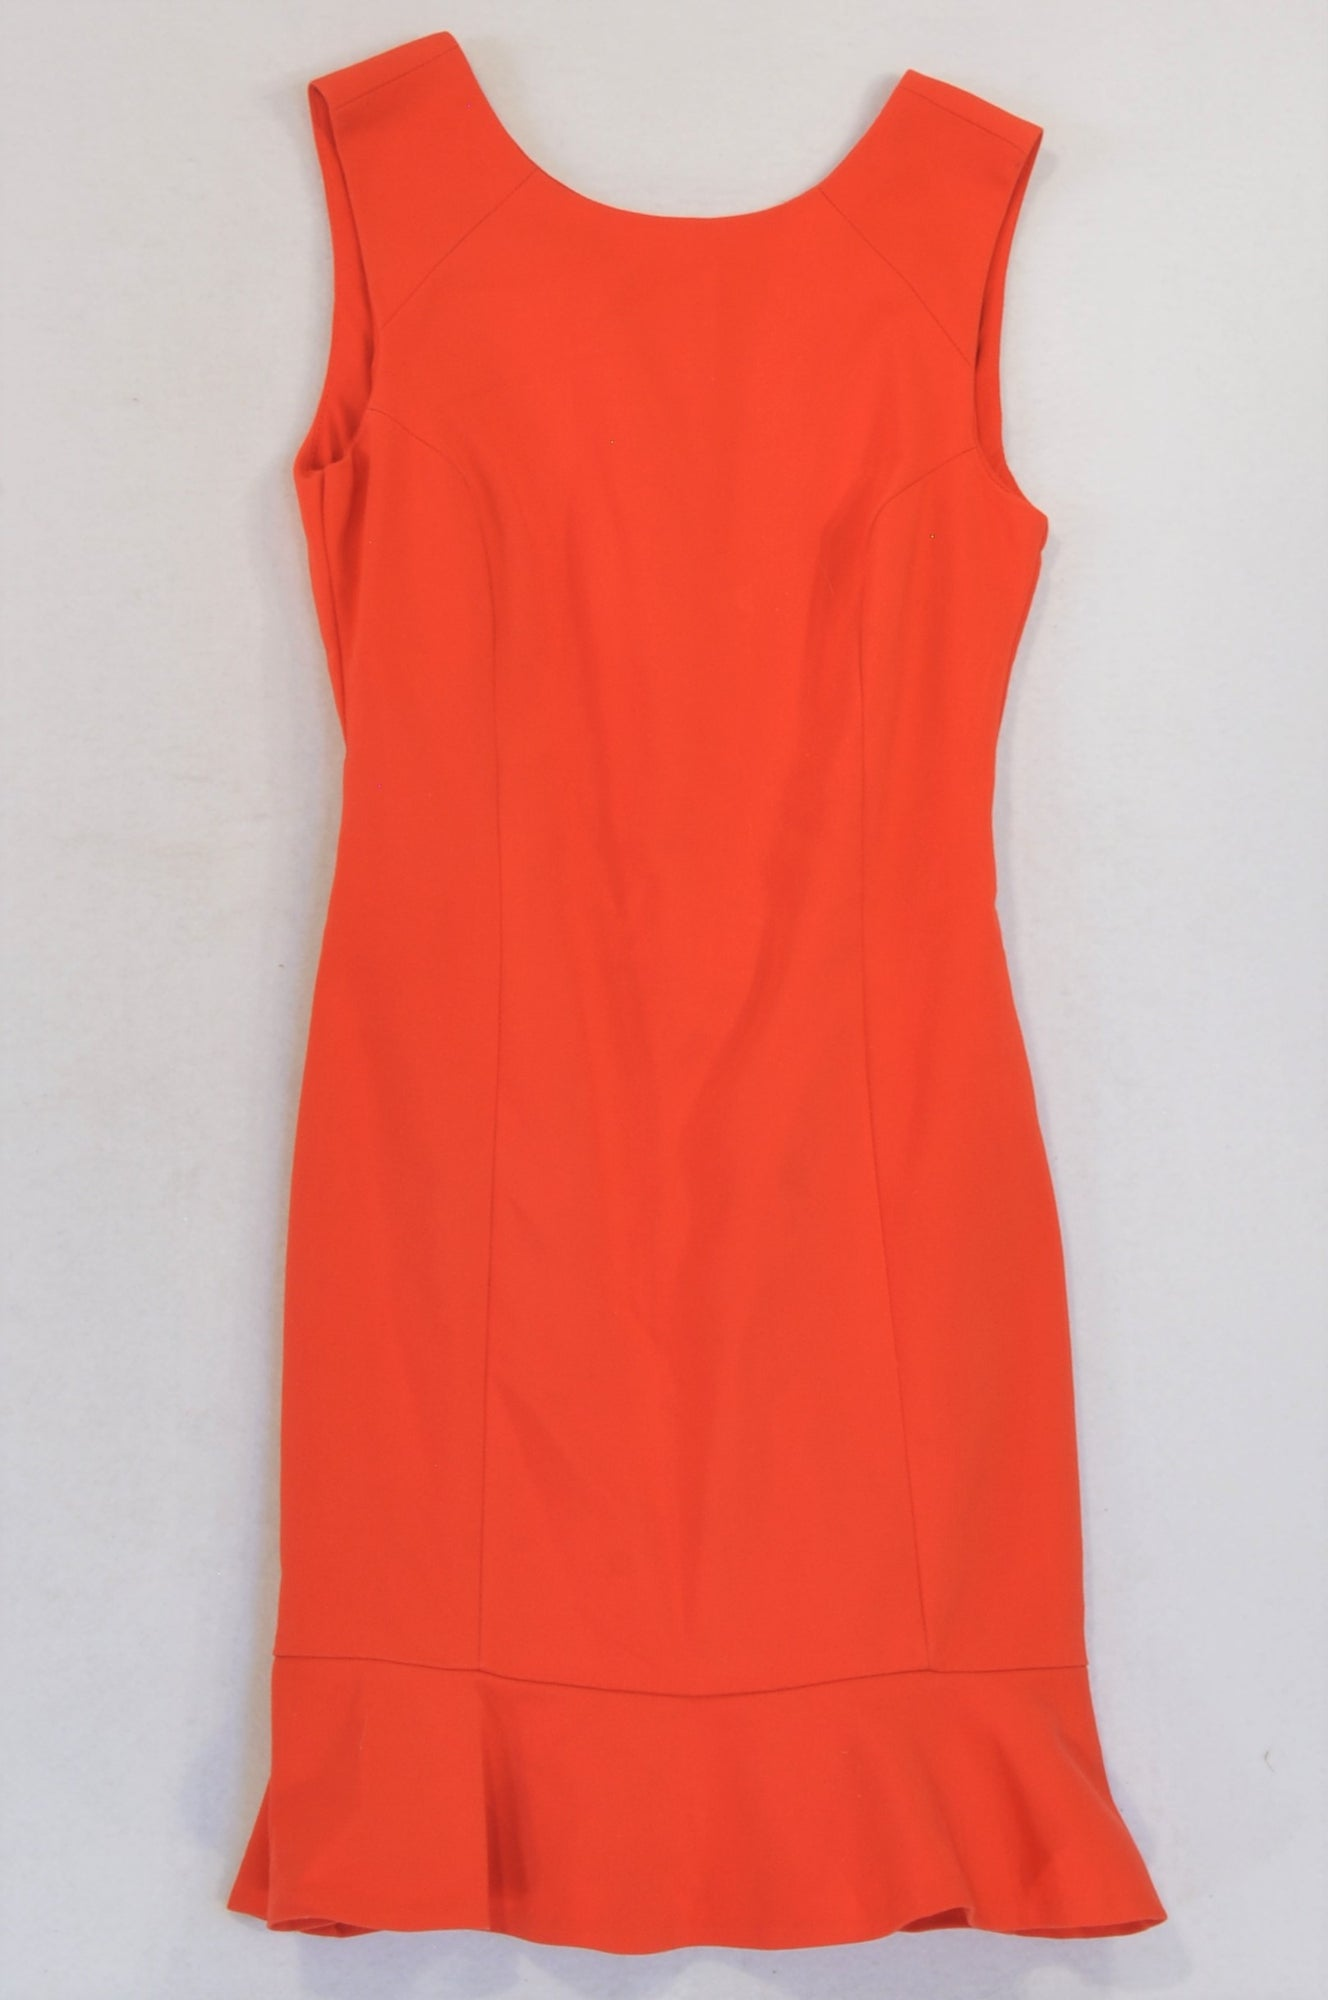 Zara Red Flare Trim Cocktail Dress Women Size 6